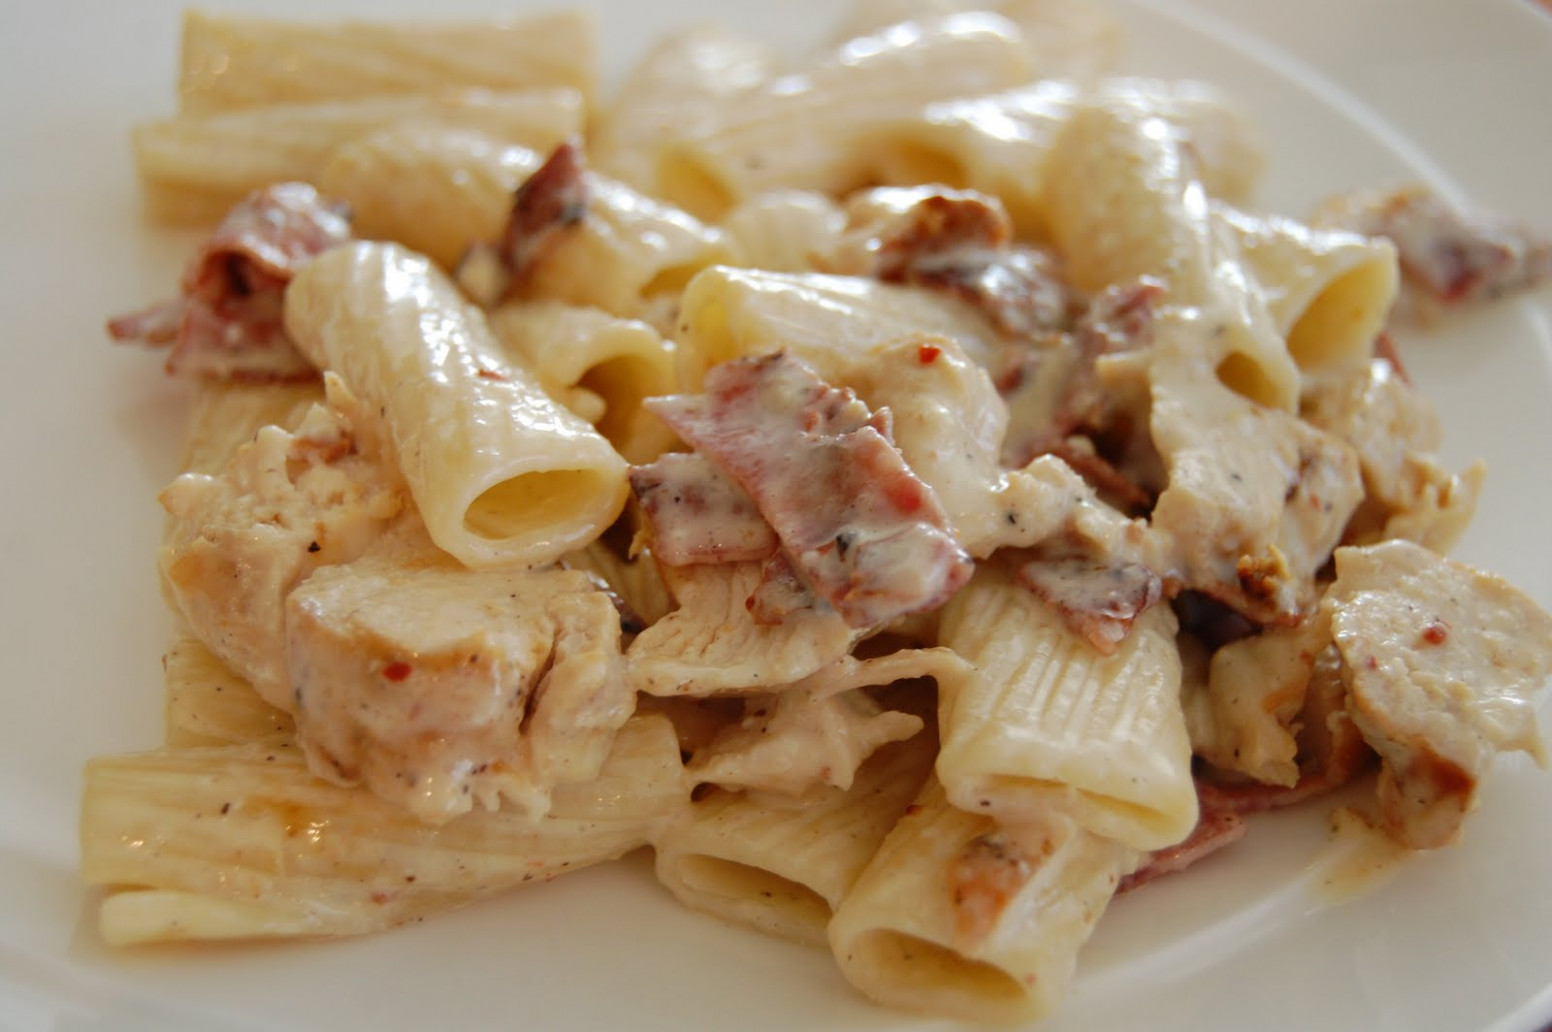 Meals at the Muirs: Chicken Bacon Pasta